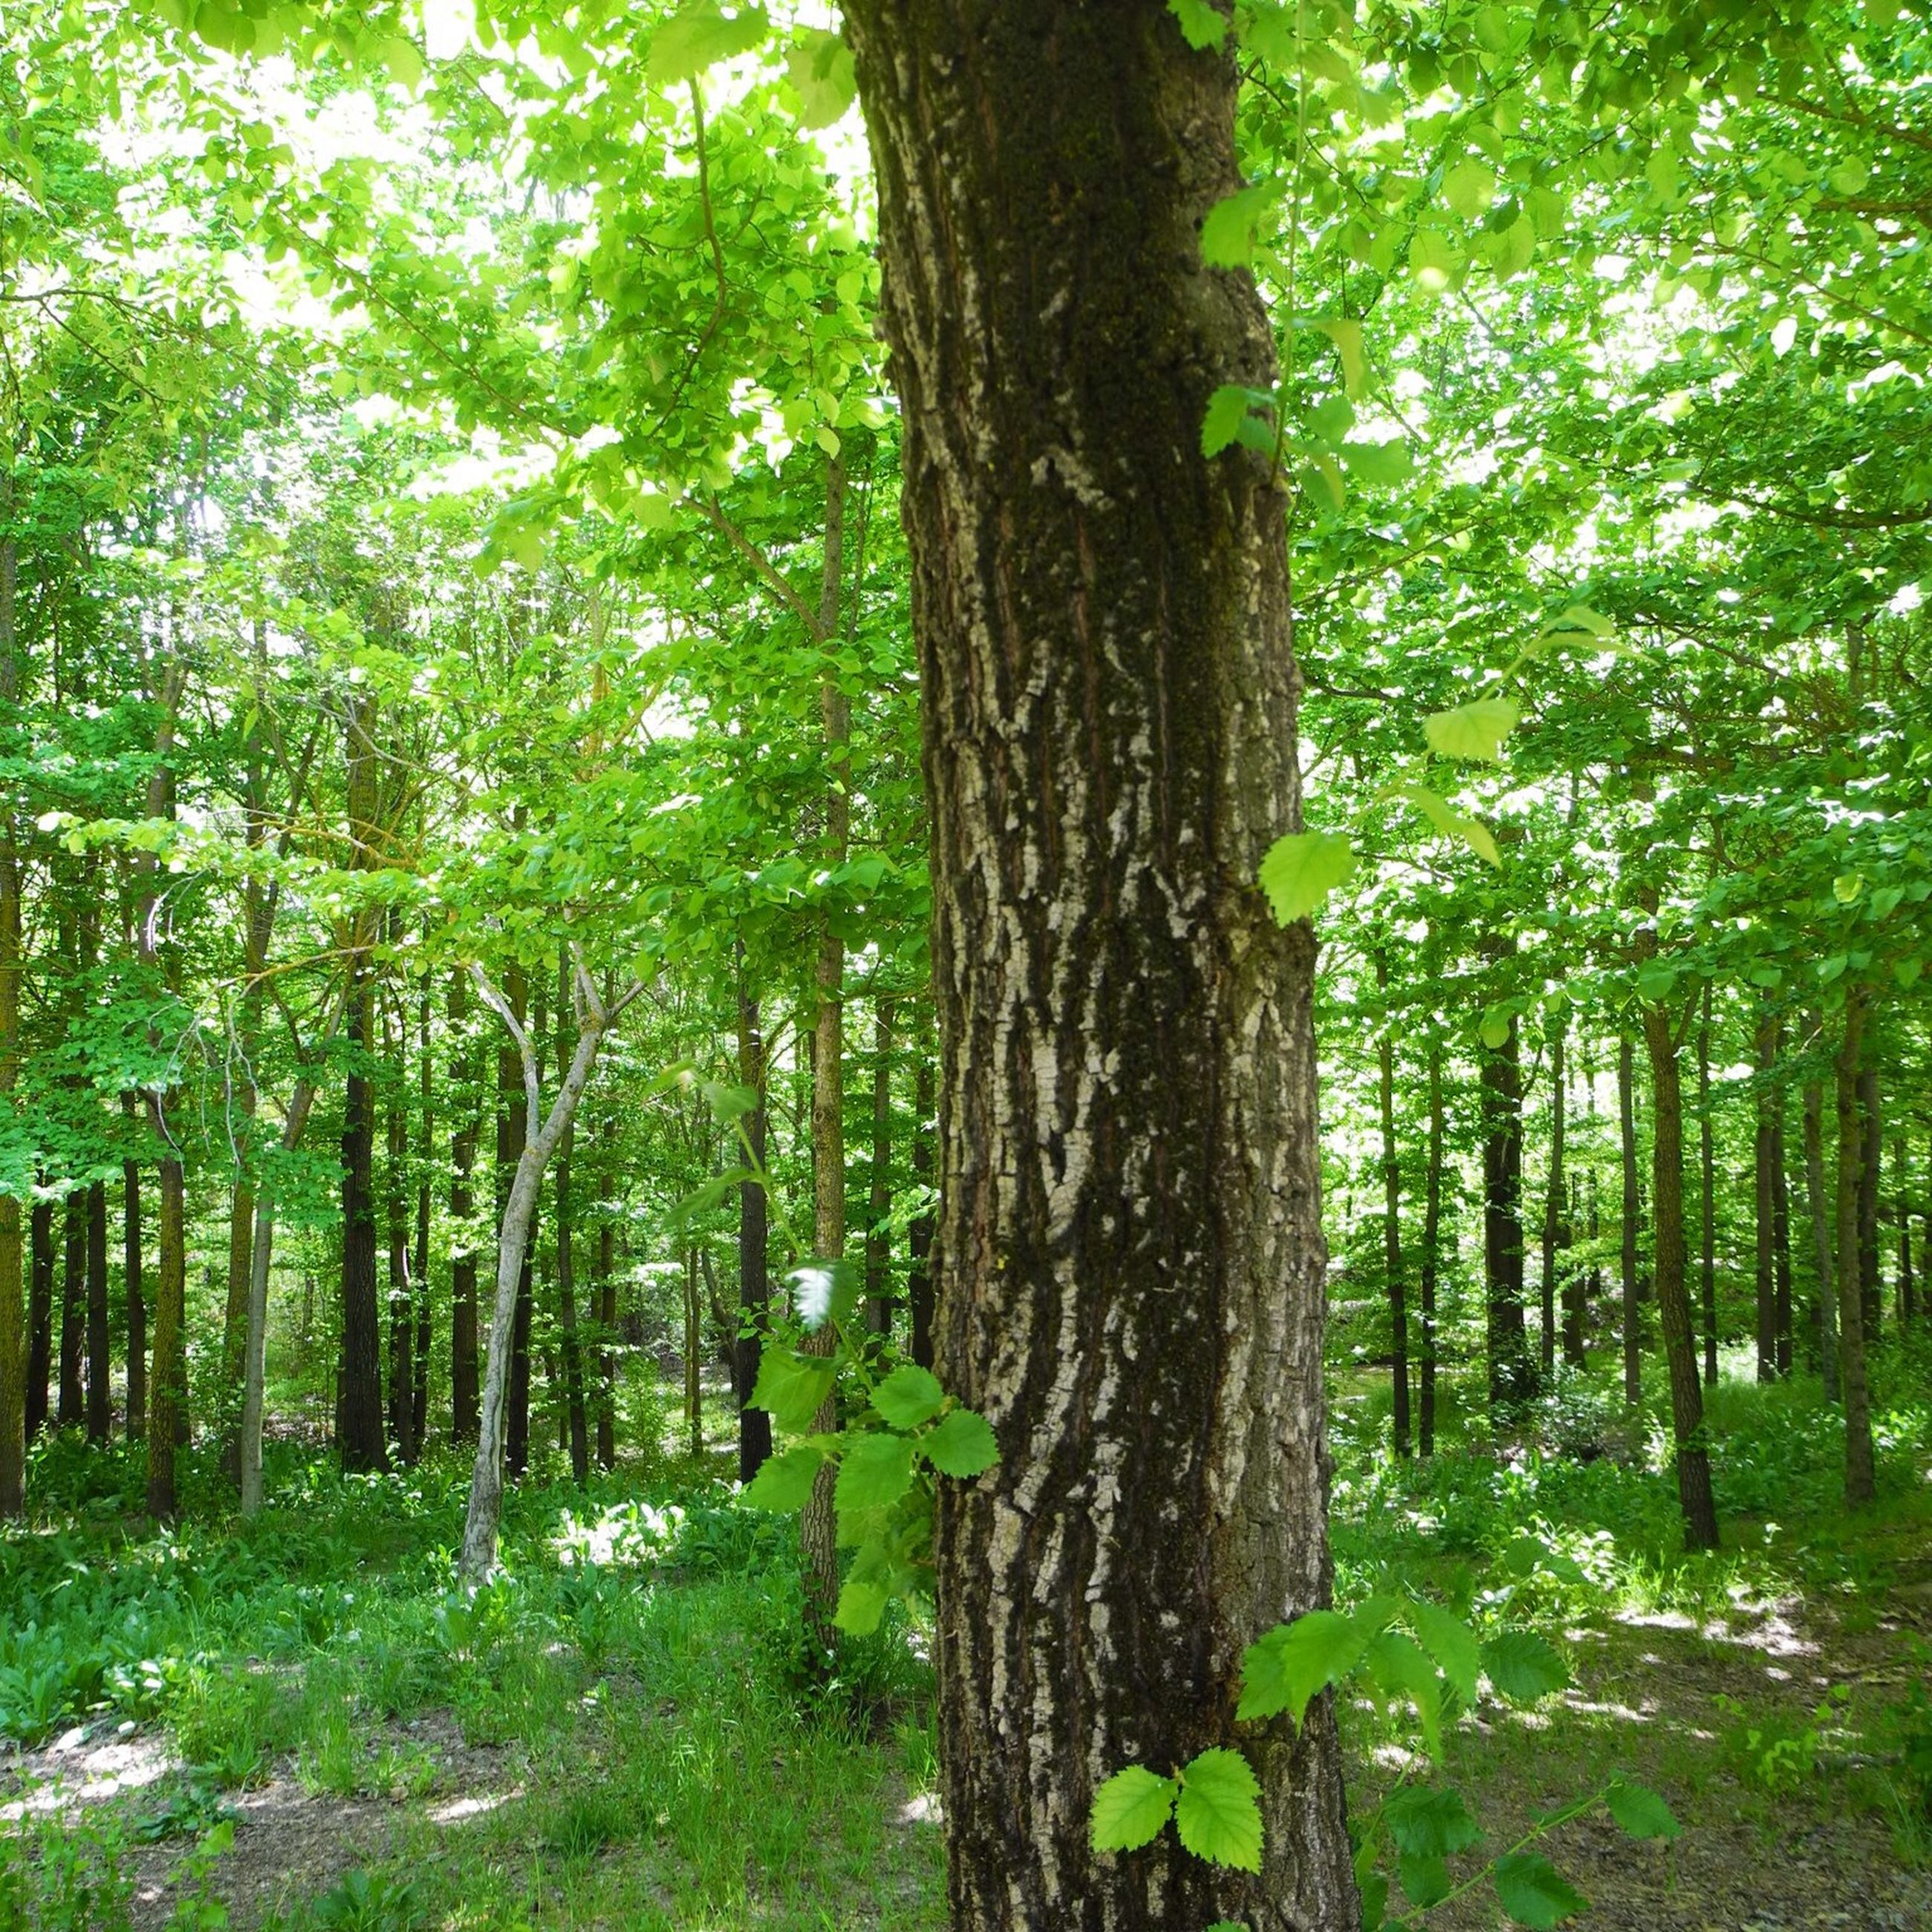 tree, tree trunk, forest, growth, tranquility, woodland, nature, green color, tranquil scene, beauty in nature, scenics, branch, landscape, non-urban scene, day, outdoors, sunlight, grass, no people, growing